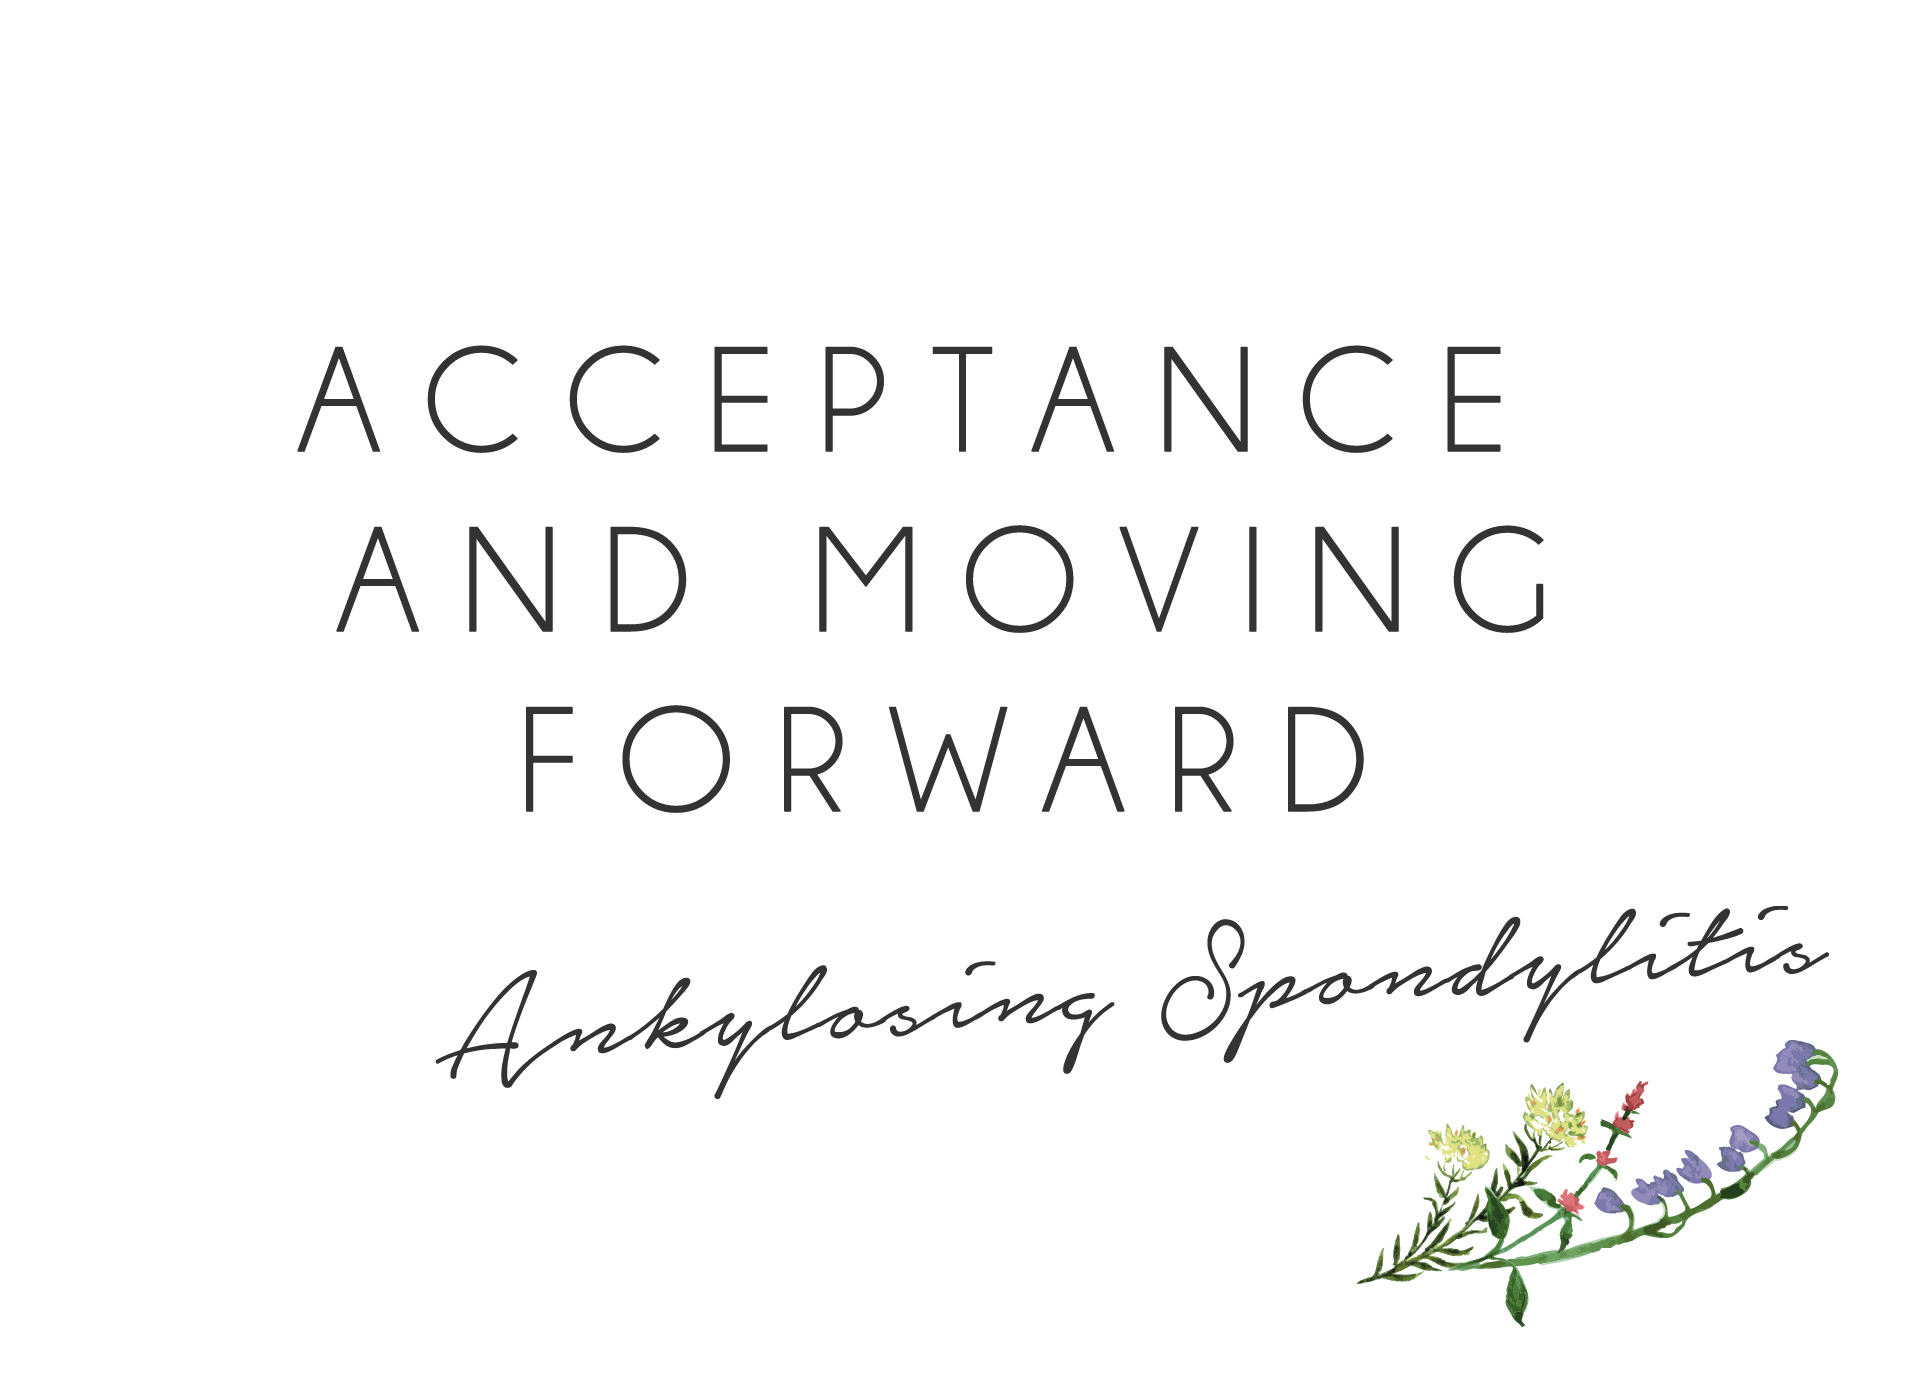 Acceptance and Moving Forward with Ankylosing Spondylitis